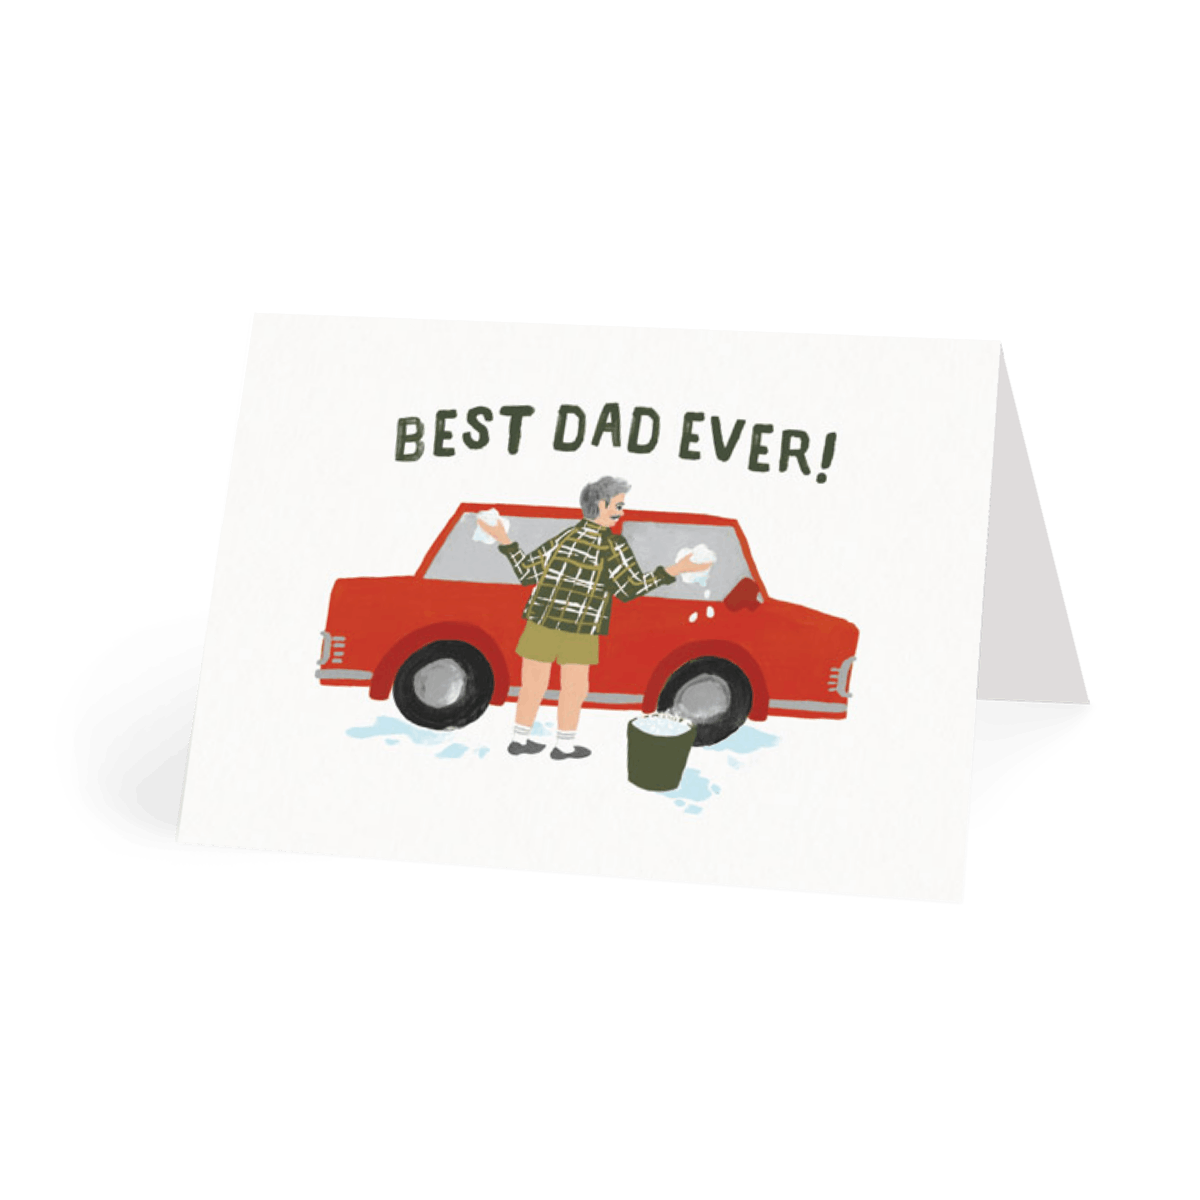 Https%3a%2f%2fwww.papier.com%2fproduct image%2f61810%2f14%2fbest dad 14673 front 1547745781.png?ixlib=rb 1.1